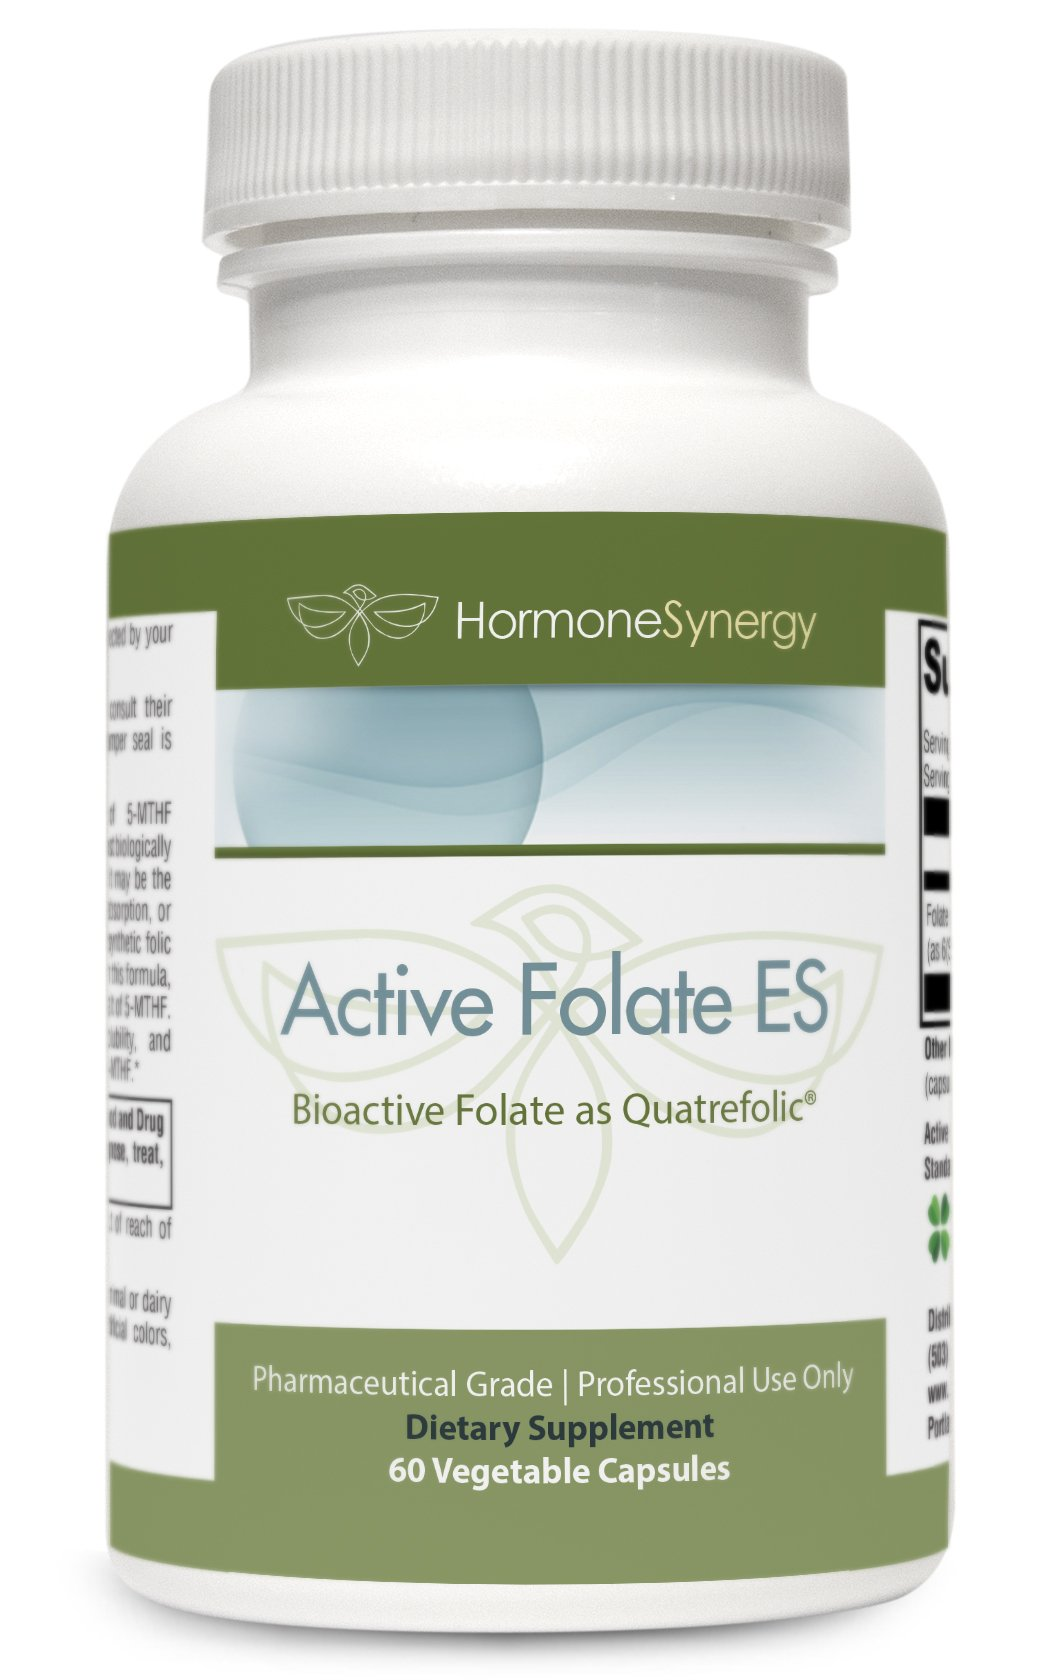 Active Folate ES | 5-MTHF | 10,000 mcg (10 mg) per Serving | 5-MTHF (as 5-methyltetrahydrofolate) | Bioactive Folate as Quatrefolic® | 60 Veg Caps